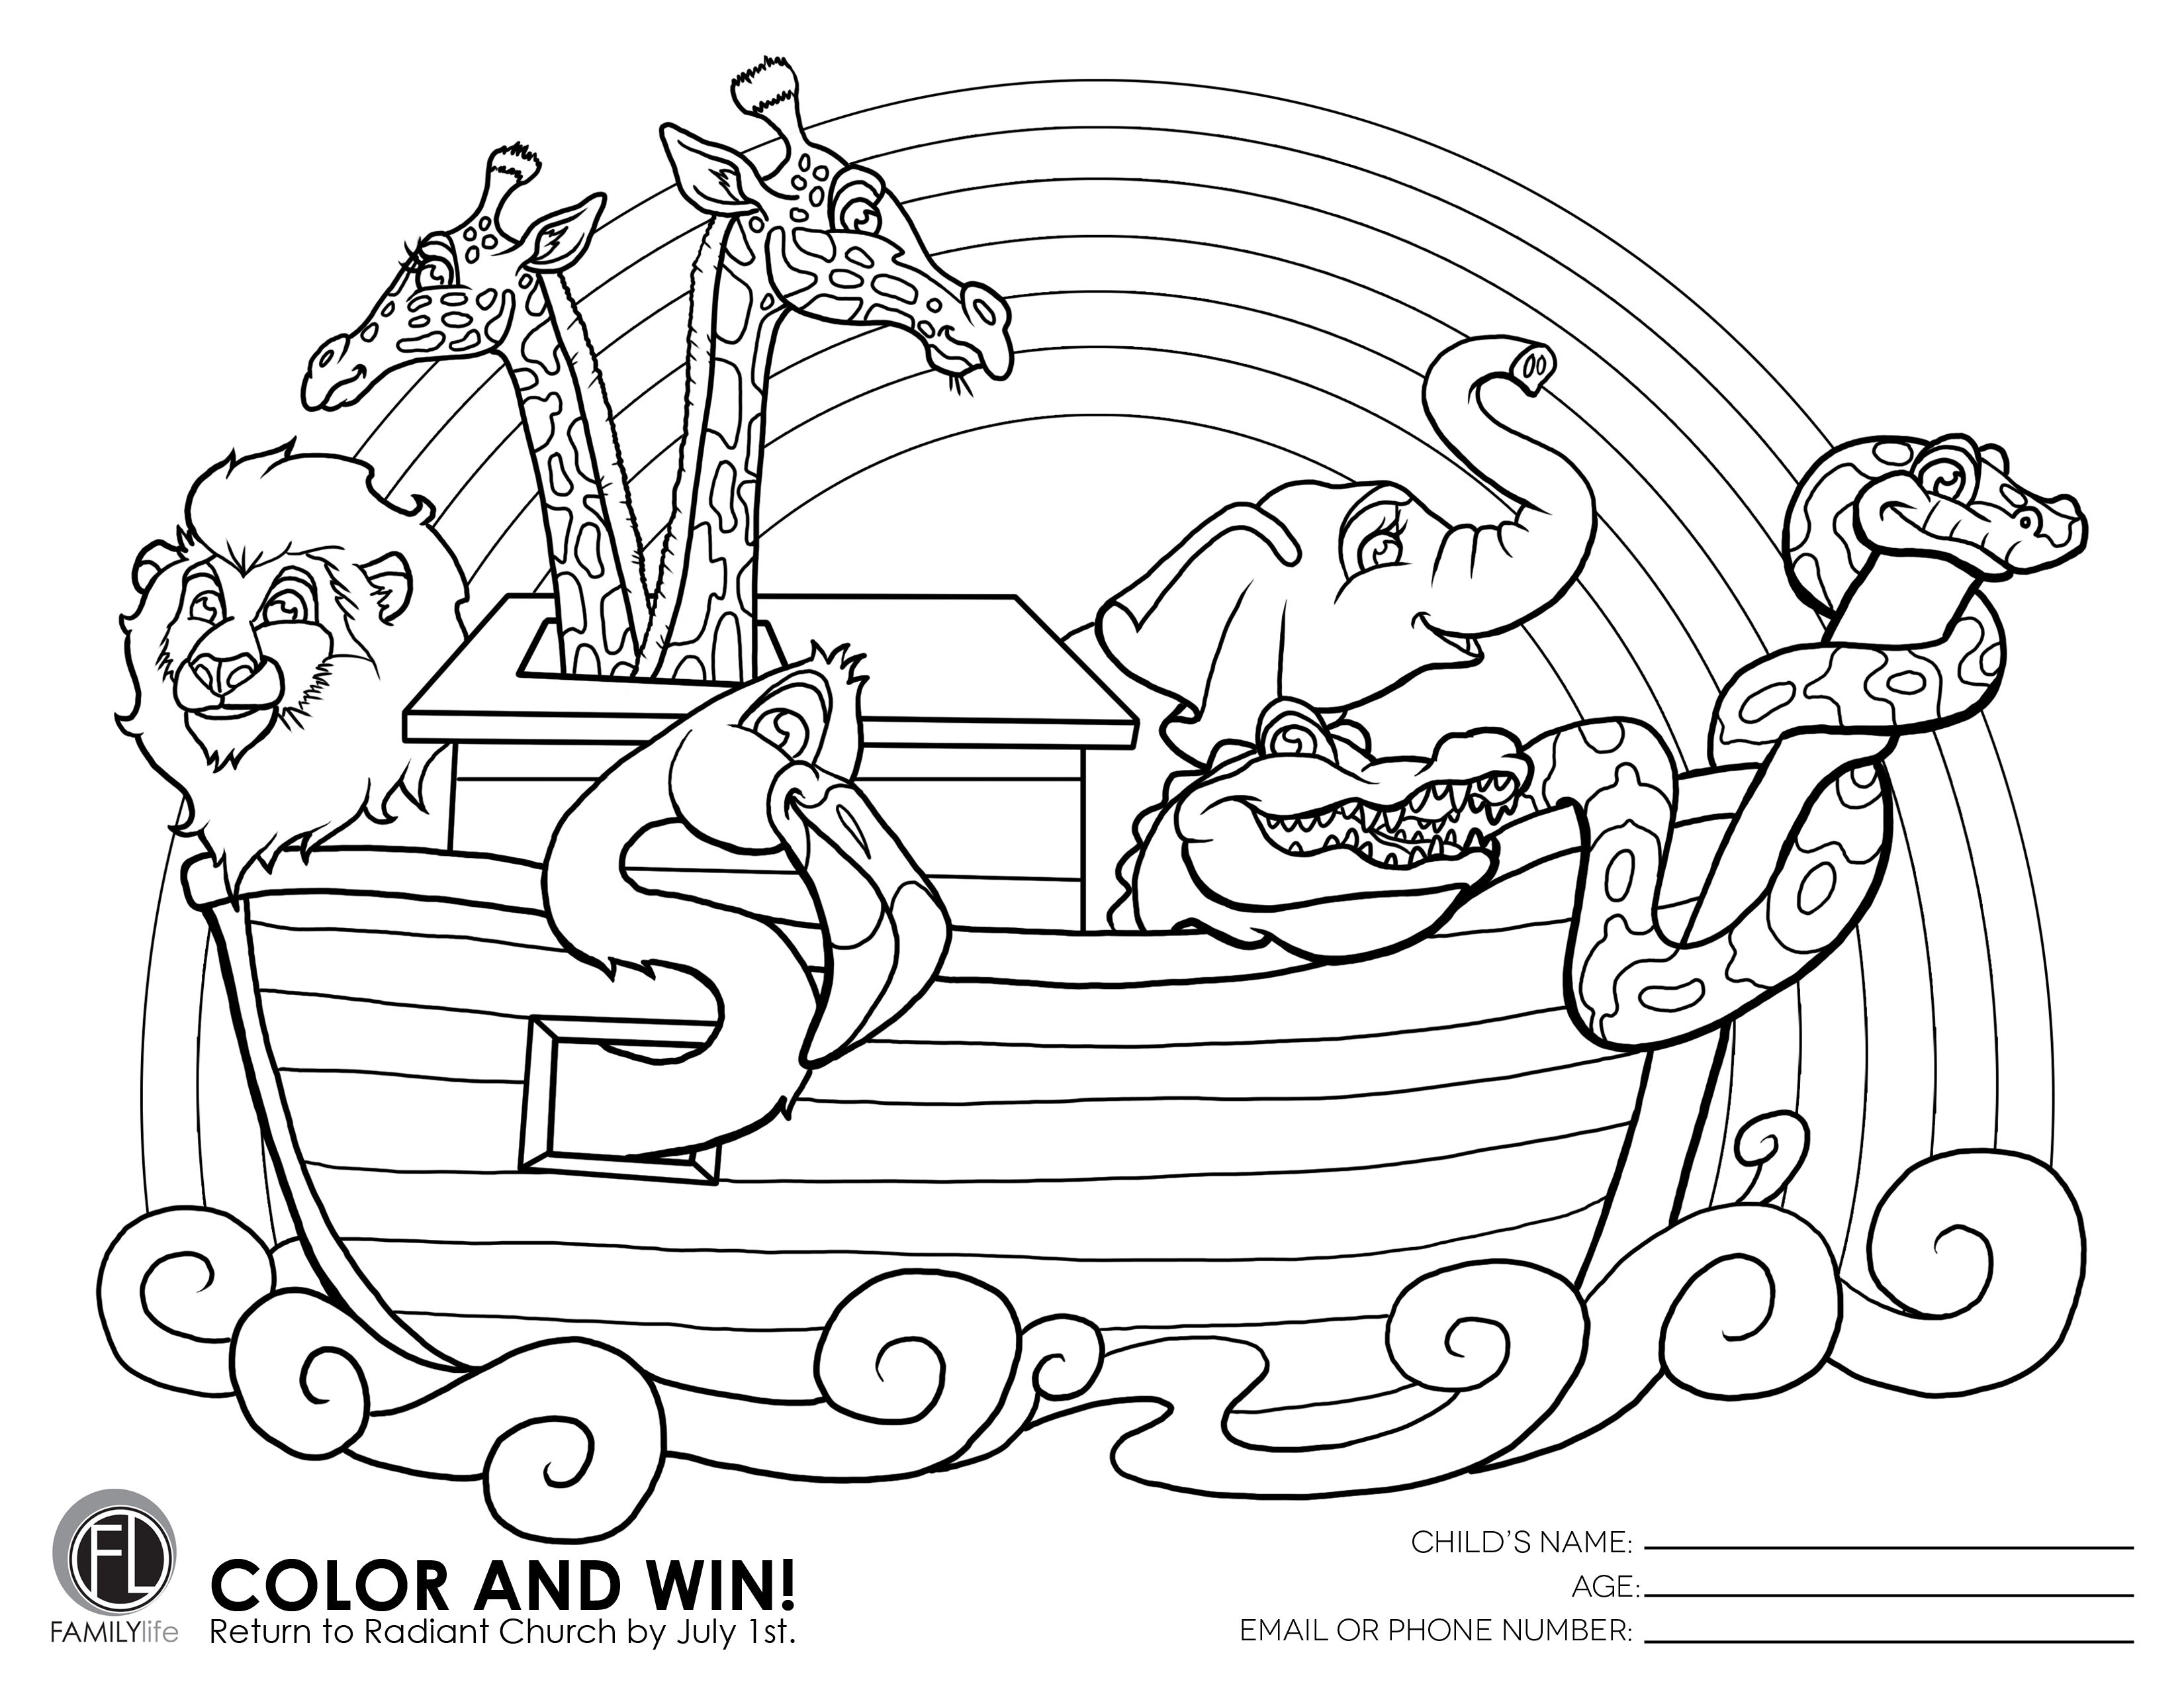 Preschool have a coloring contest going on! Please bring